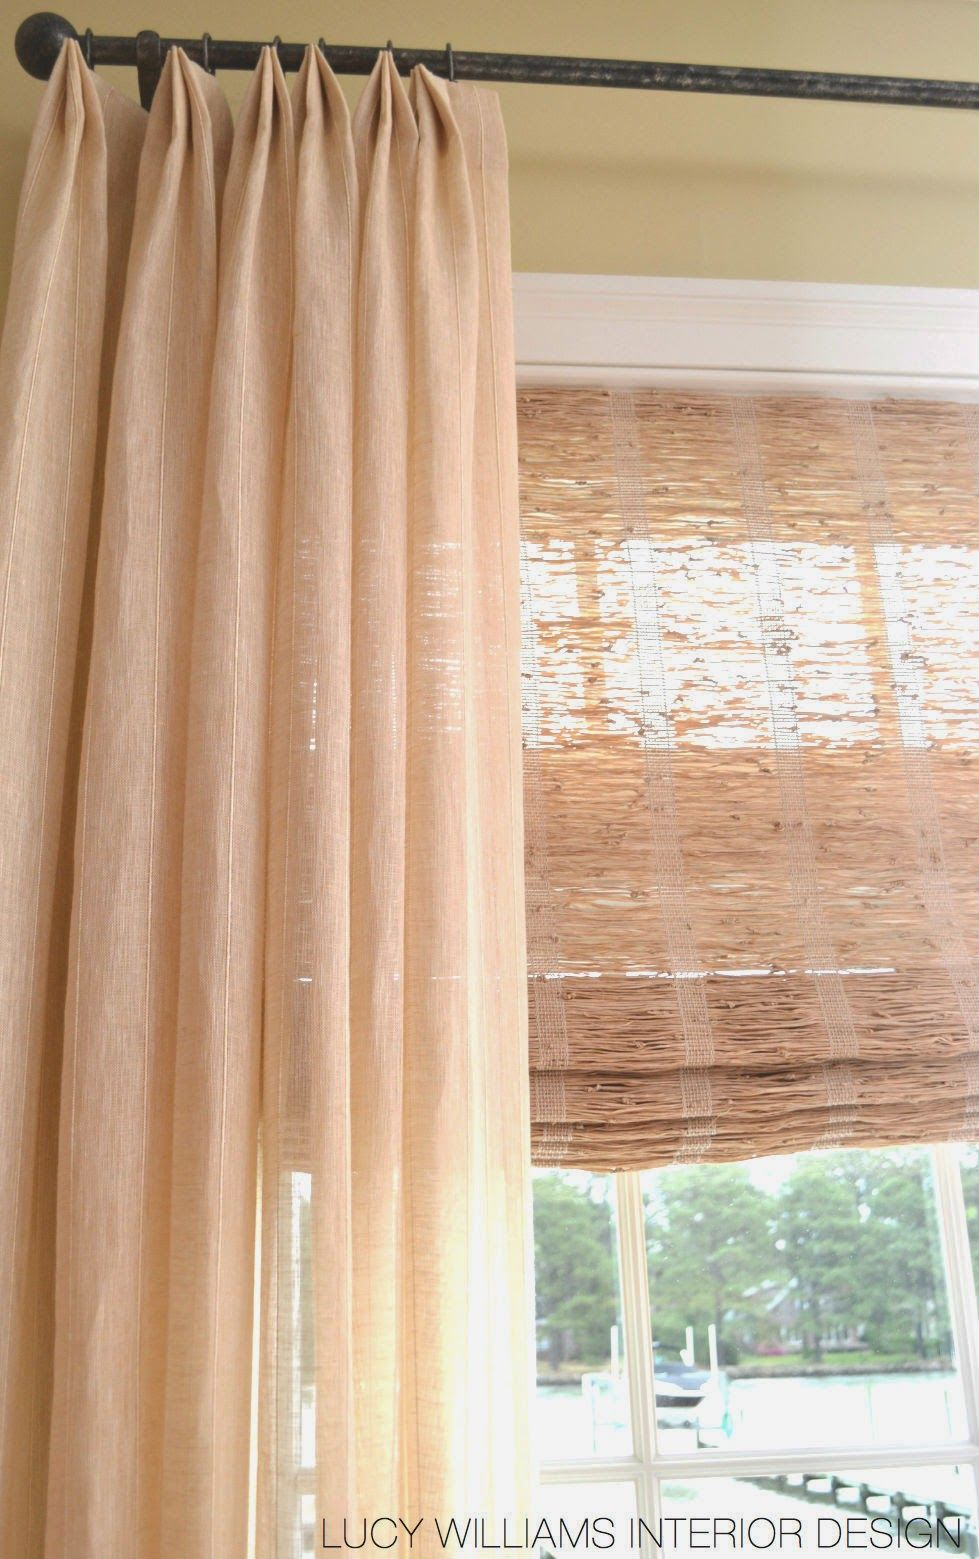 Bamboo house window design  lucy williams interior design blog april   ideas for the house